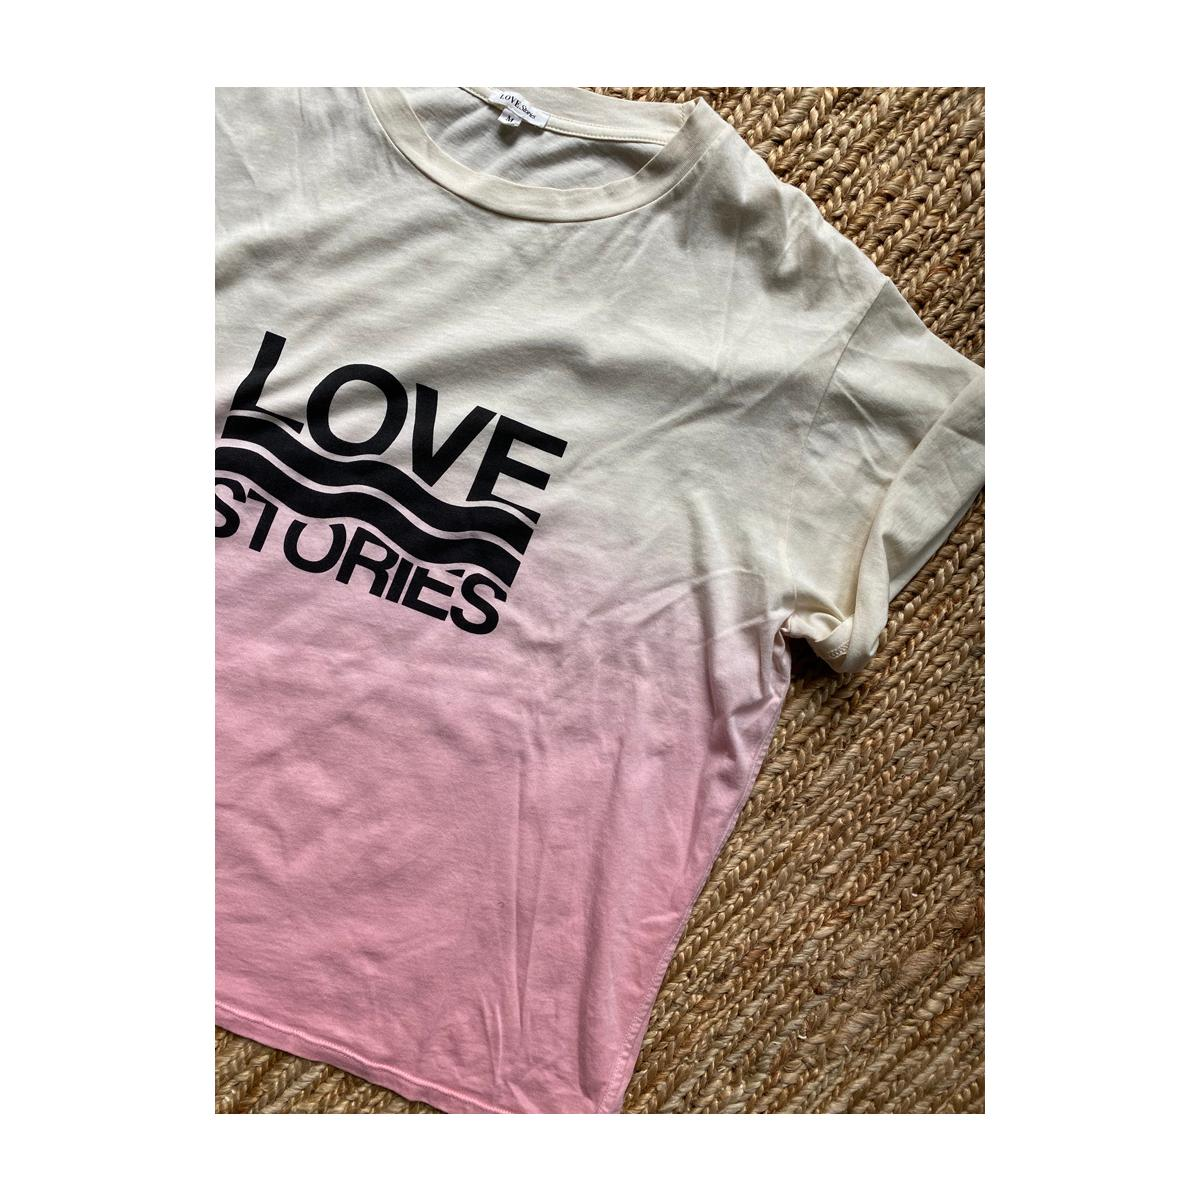 Love stories Josie T-Shirt